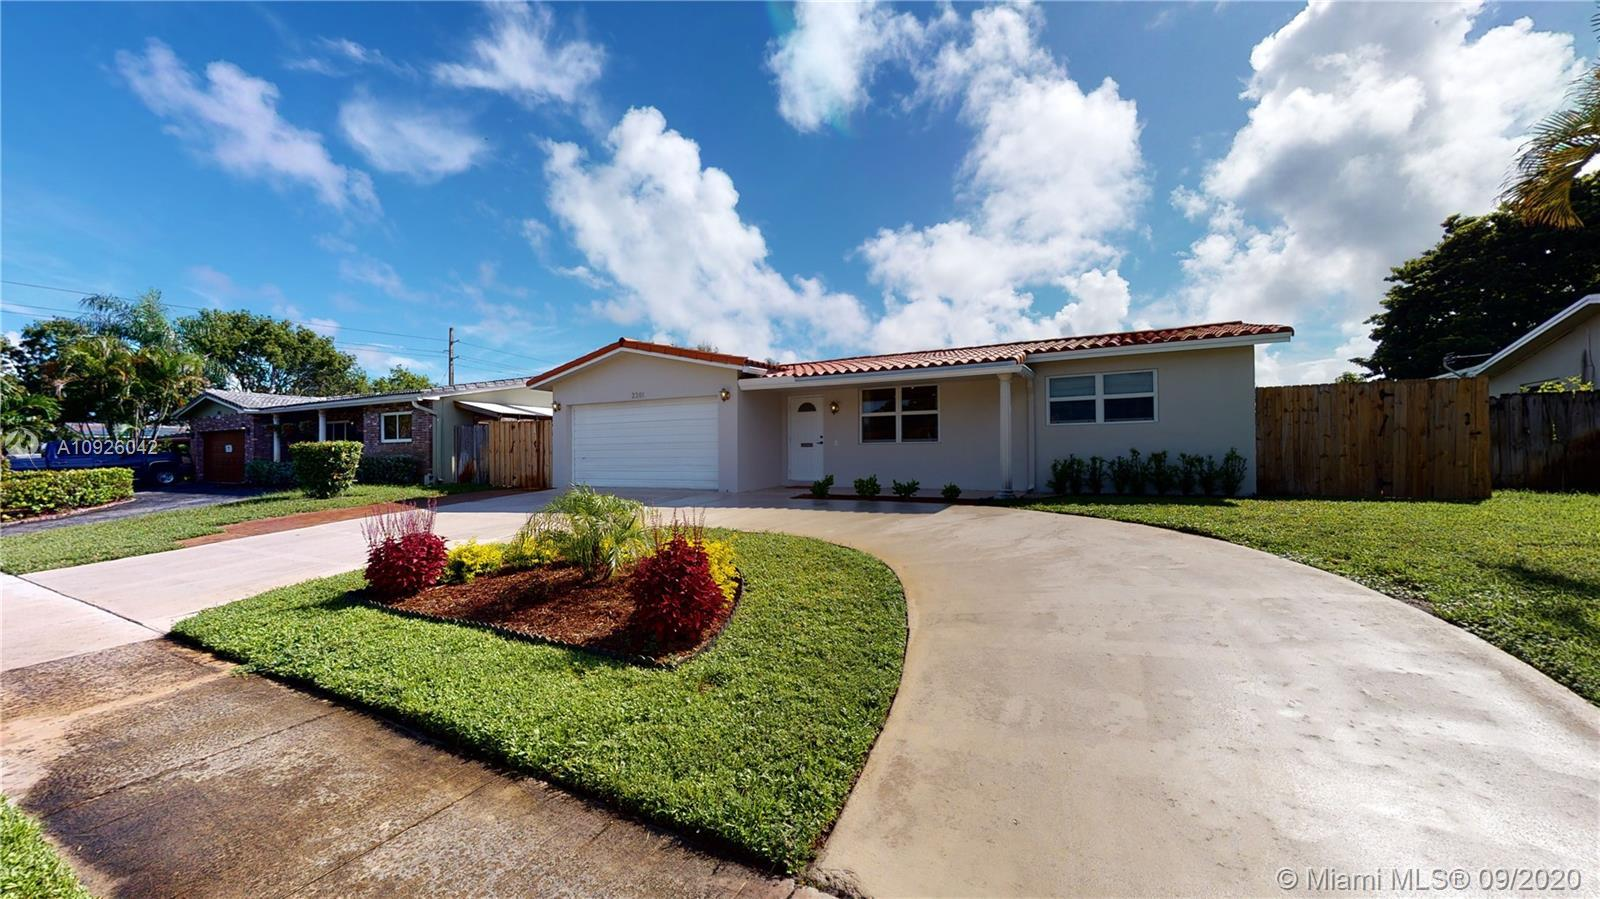 This truly turn key home will wow you from the moment you pull in to the driveway! Freshly painted a